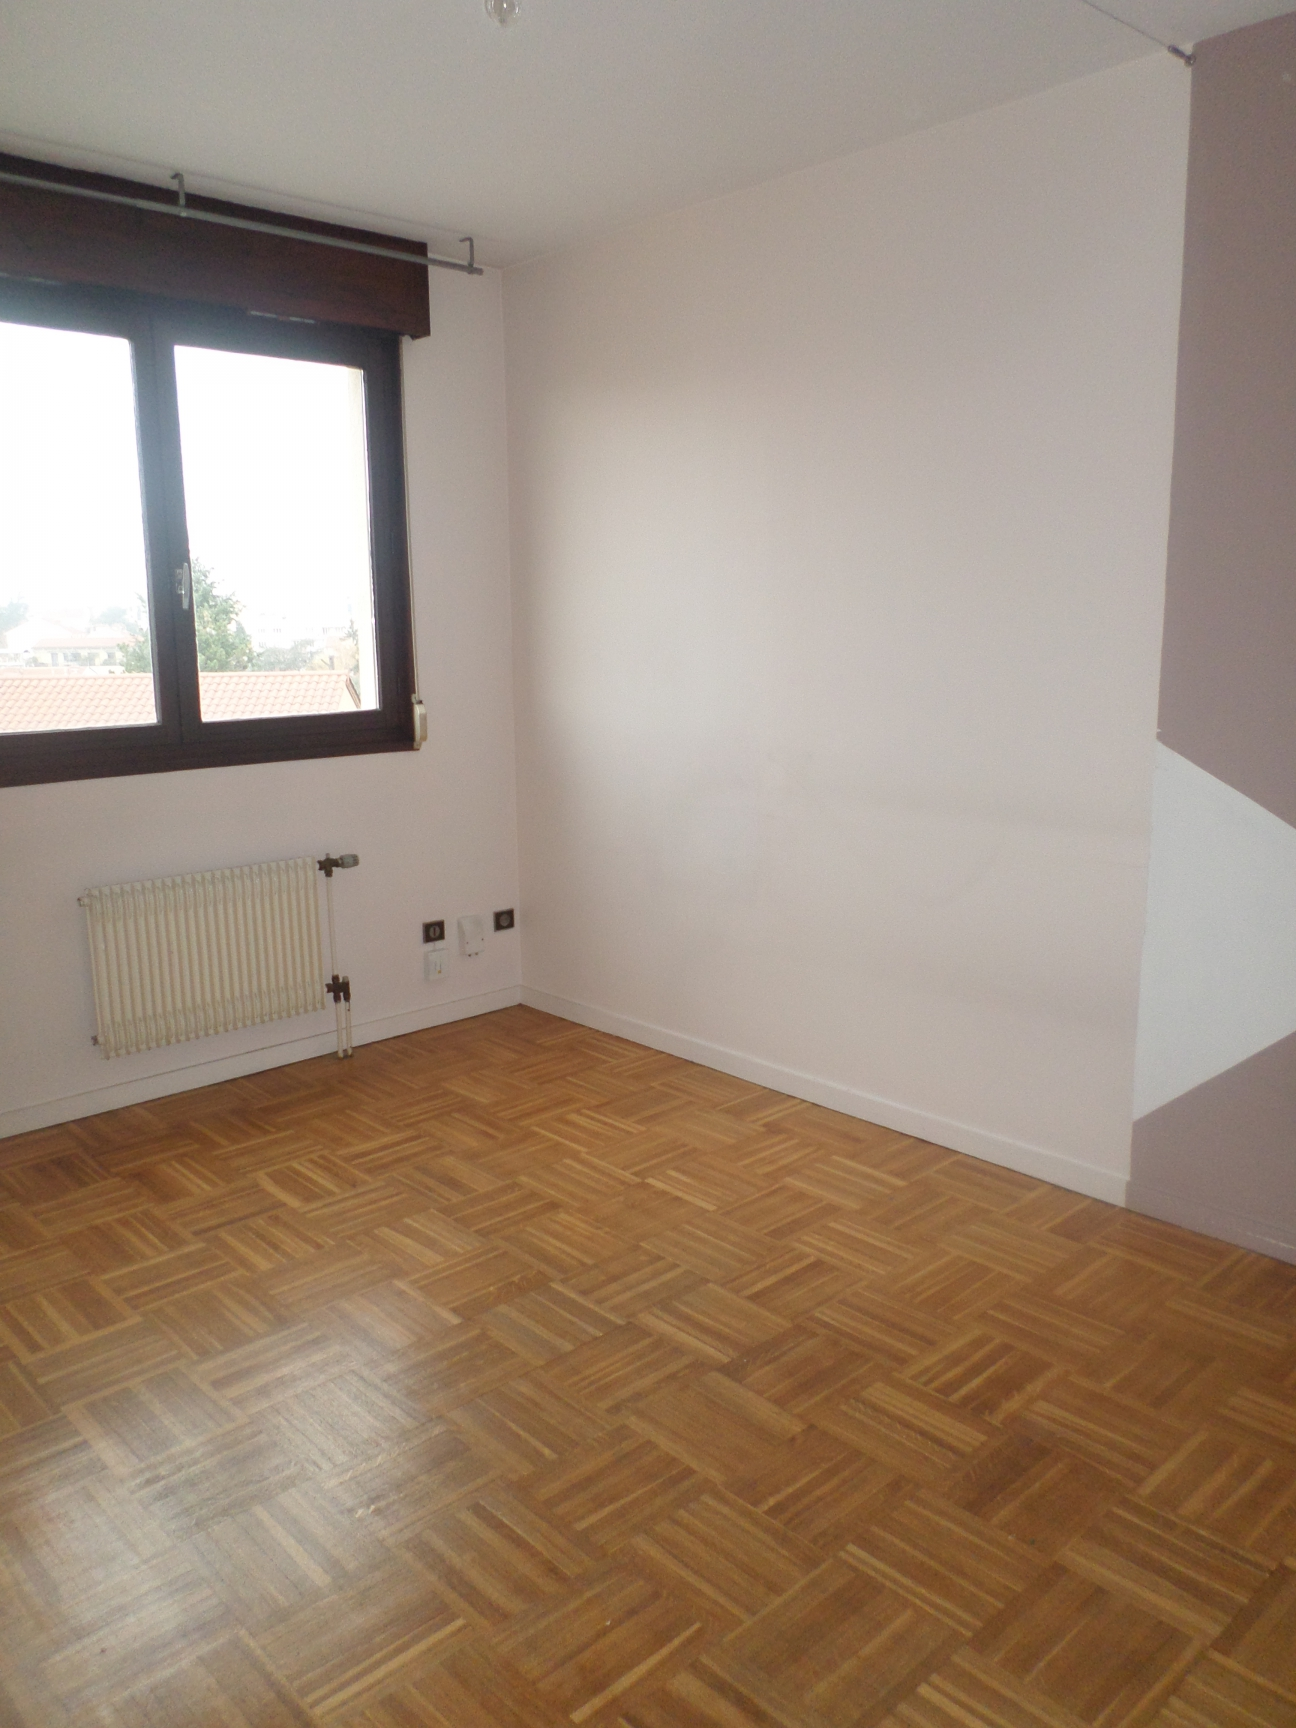 Photos de Appartement à Lyon (69003)